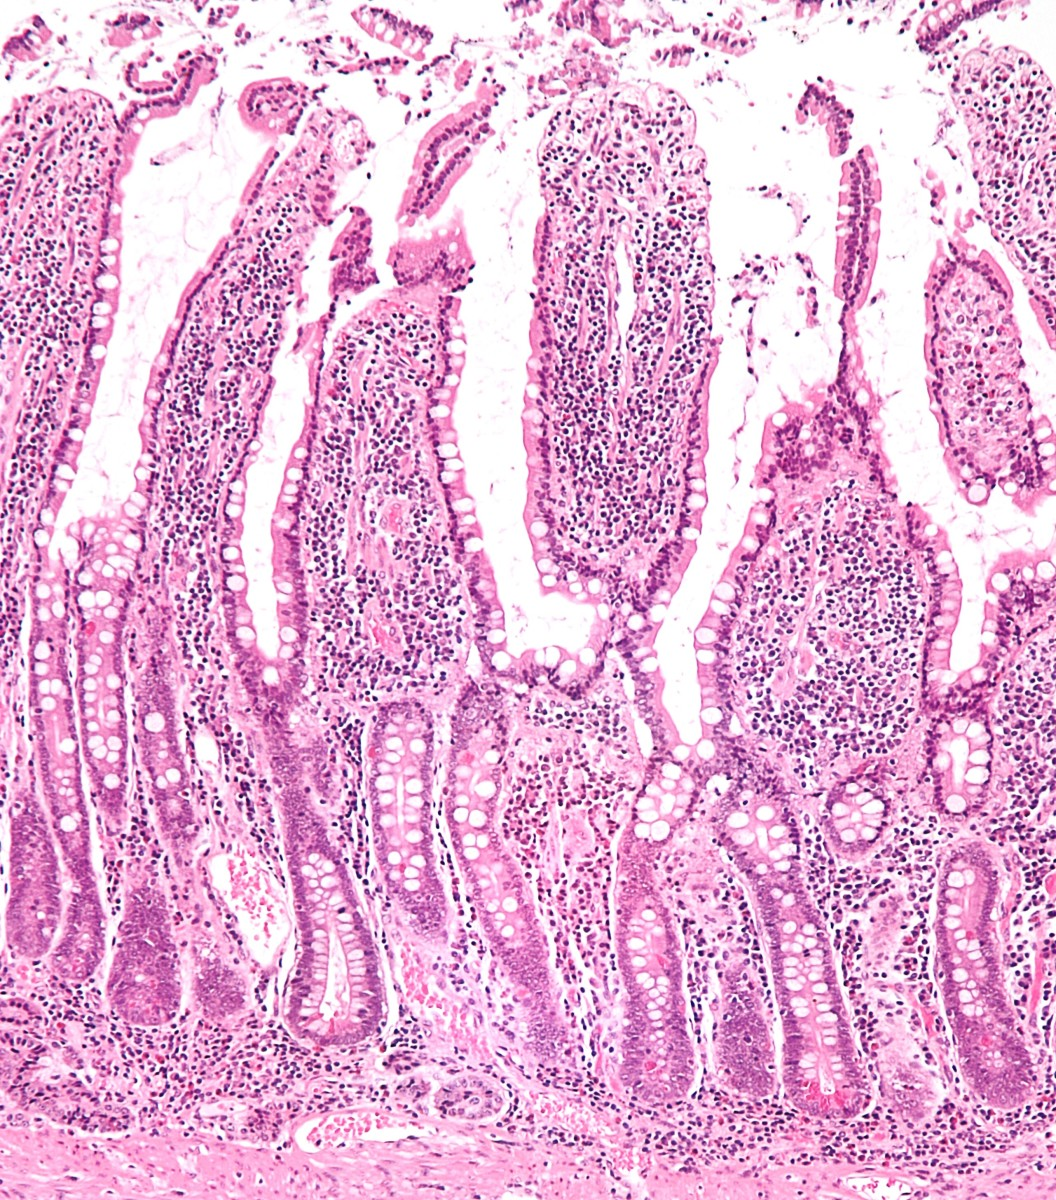 A section of the small intestine lining that has been stained and magnified